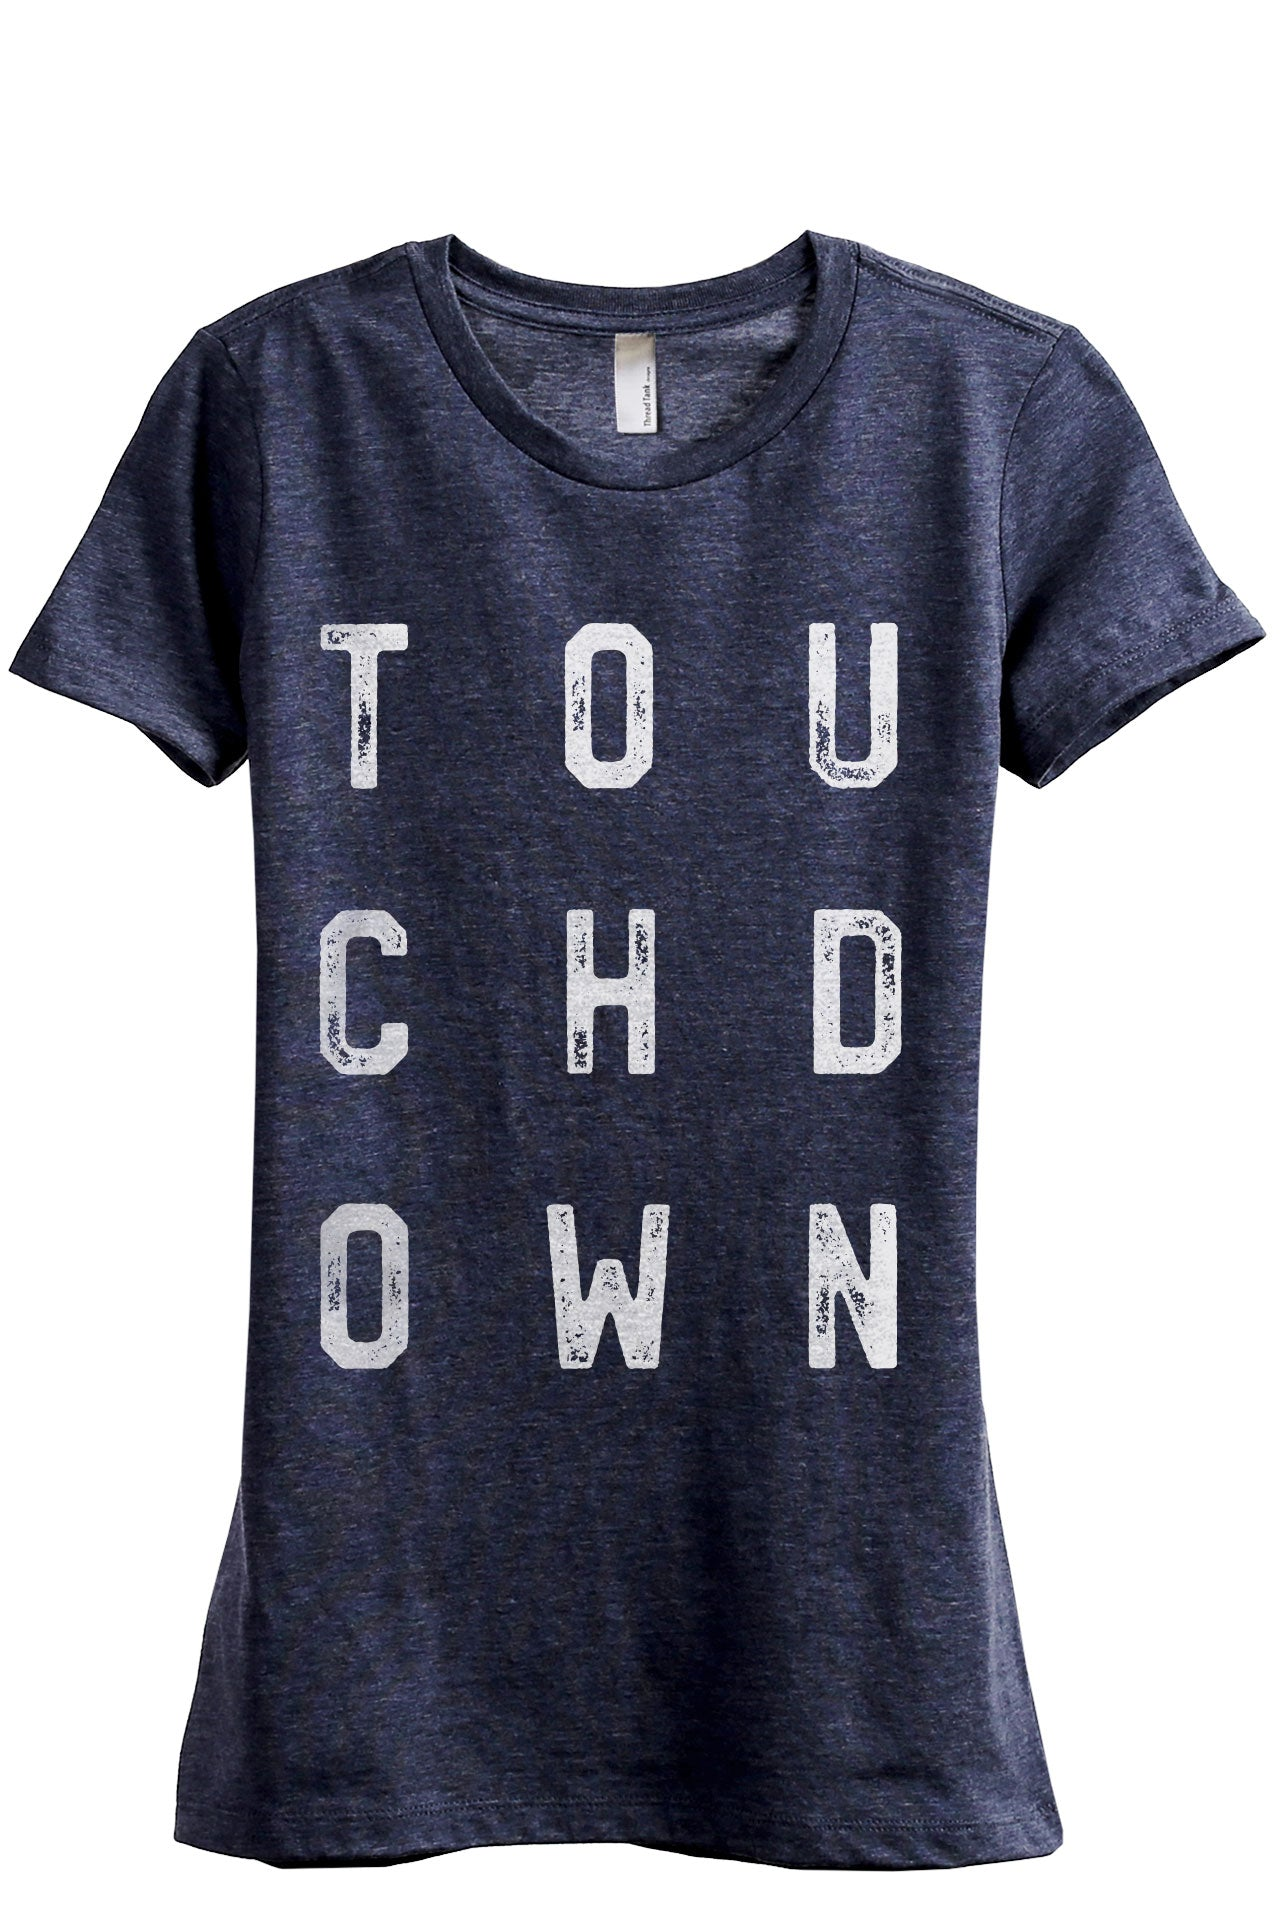 Touchdown Women's Relaxed Crewneck T-Shirt Top Tee Heather Navy Grey